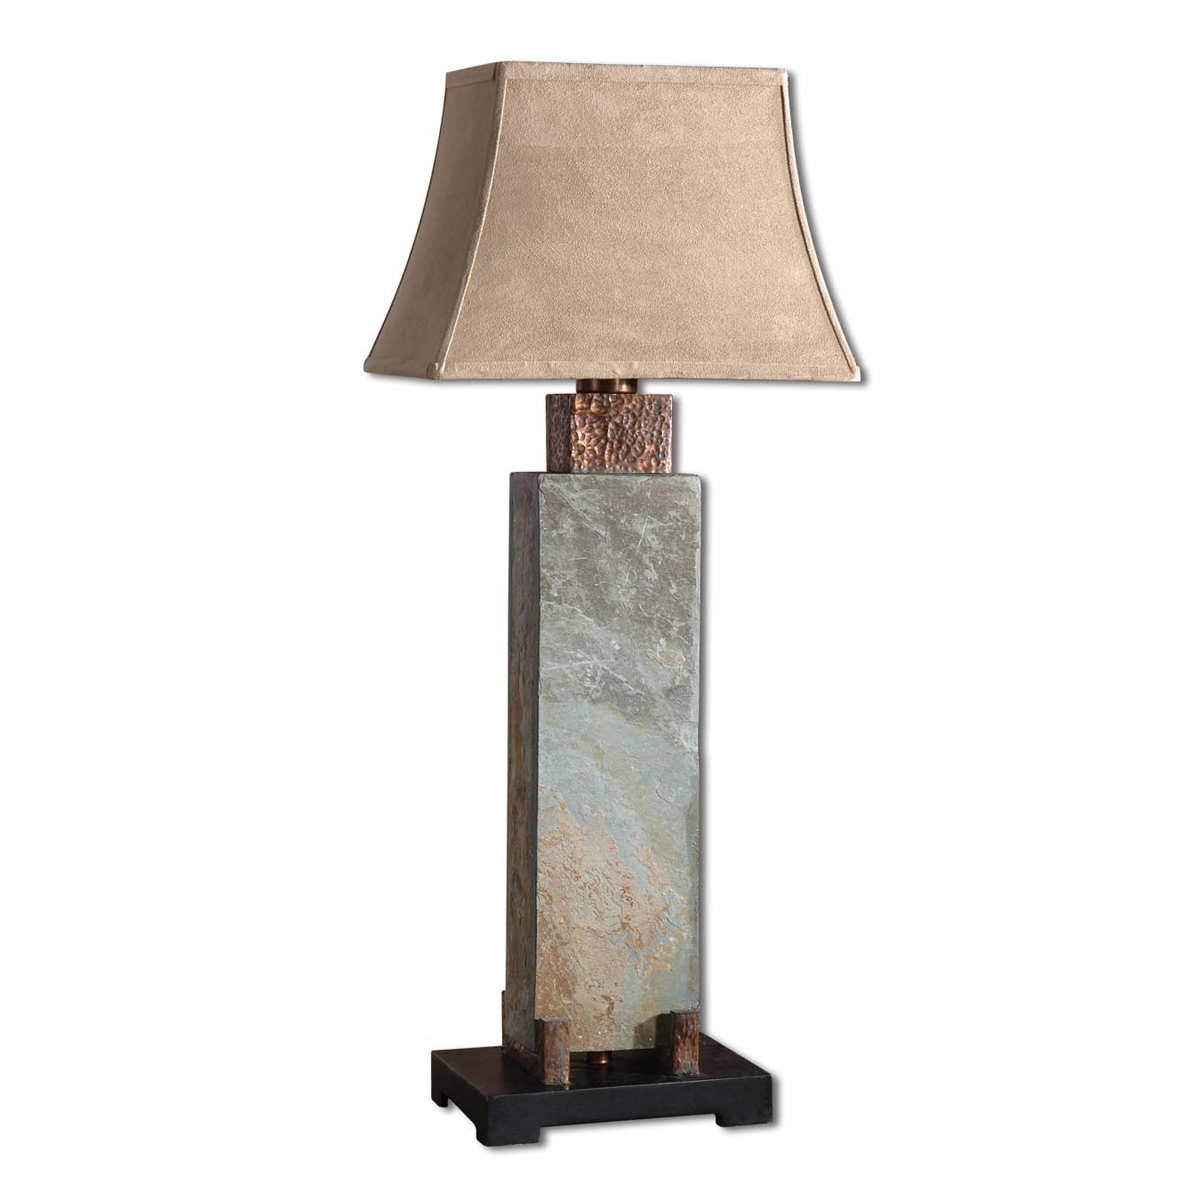 Creative Decoration Rustic Table Lamps For Living Room Rustic Table Inside Newest Tall Table Lamps For Living Room (View 6 of 15)